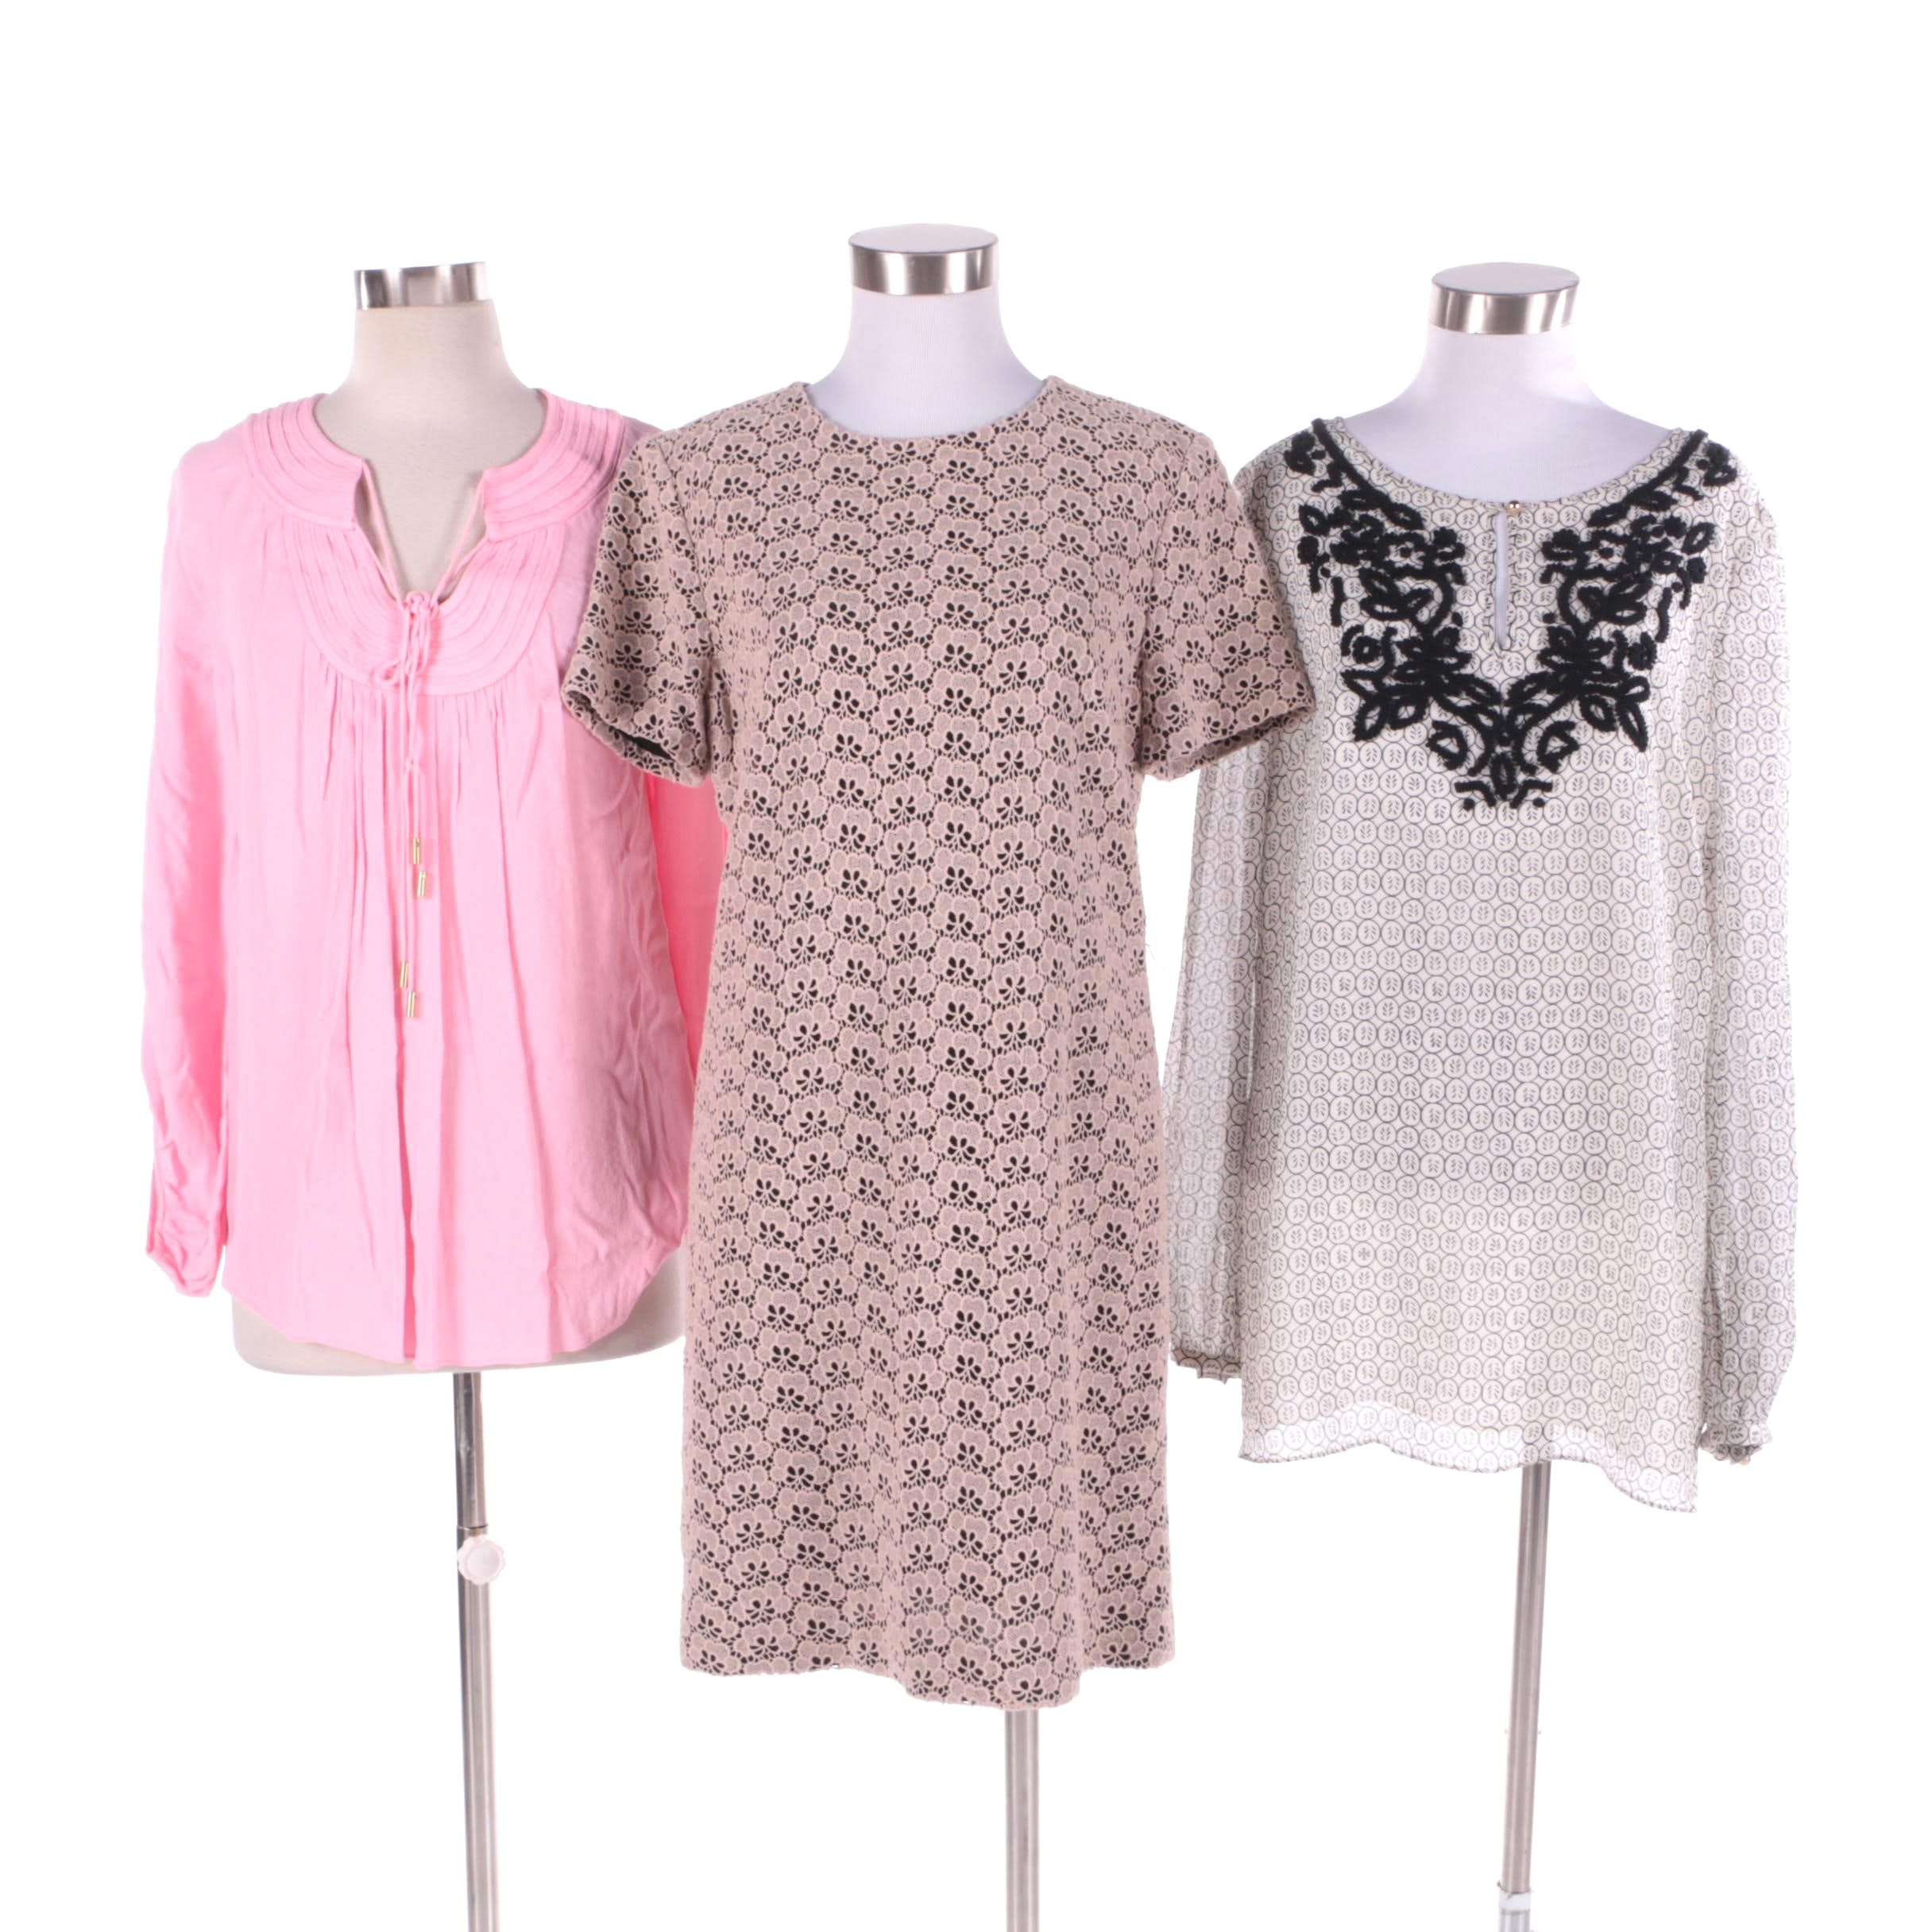 Diane von Furstenberg  and Tory Burch Tops and Dress